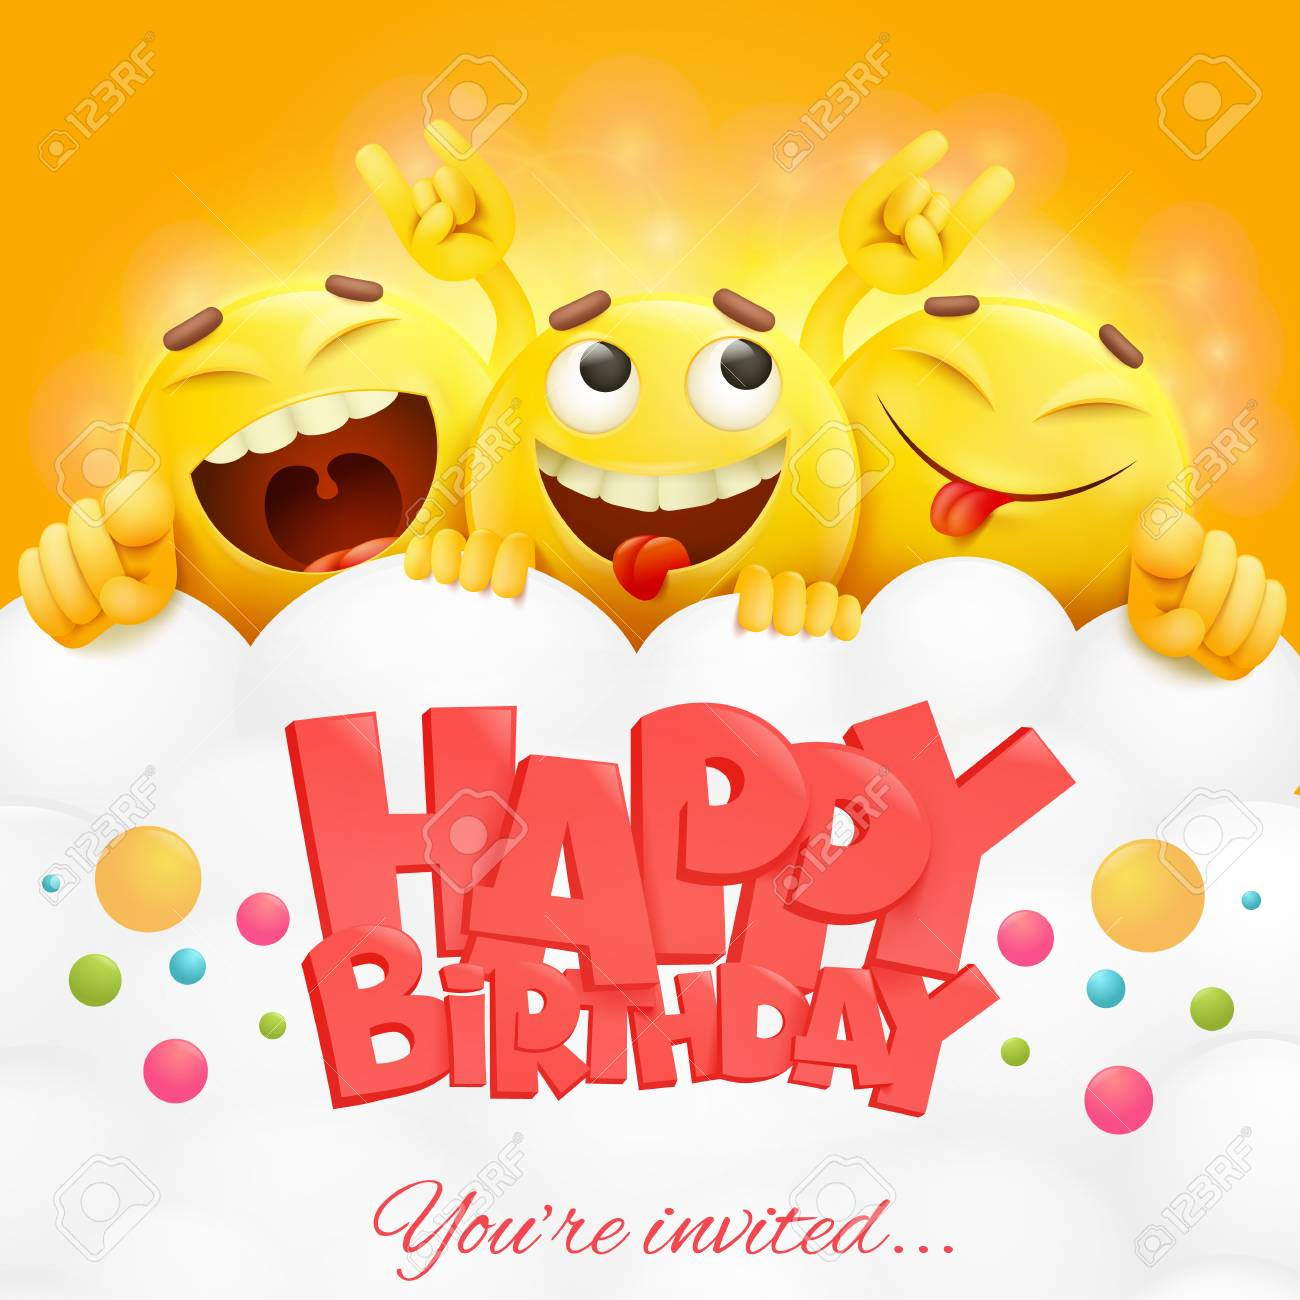 Smiley yellow faces emoji characters. Happy birthday card. realistic...